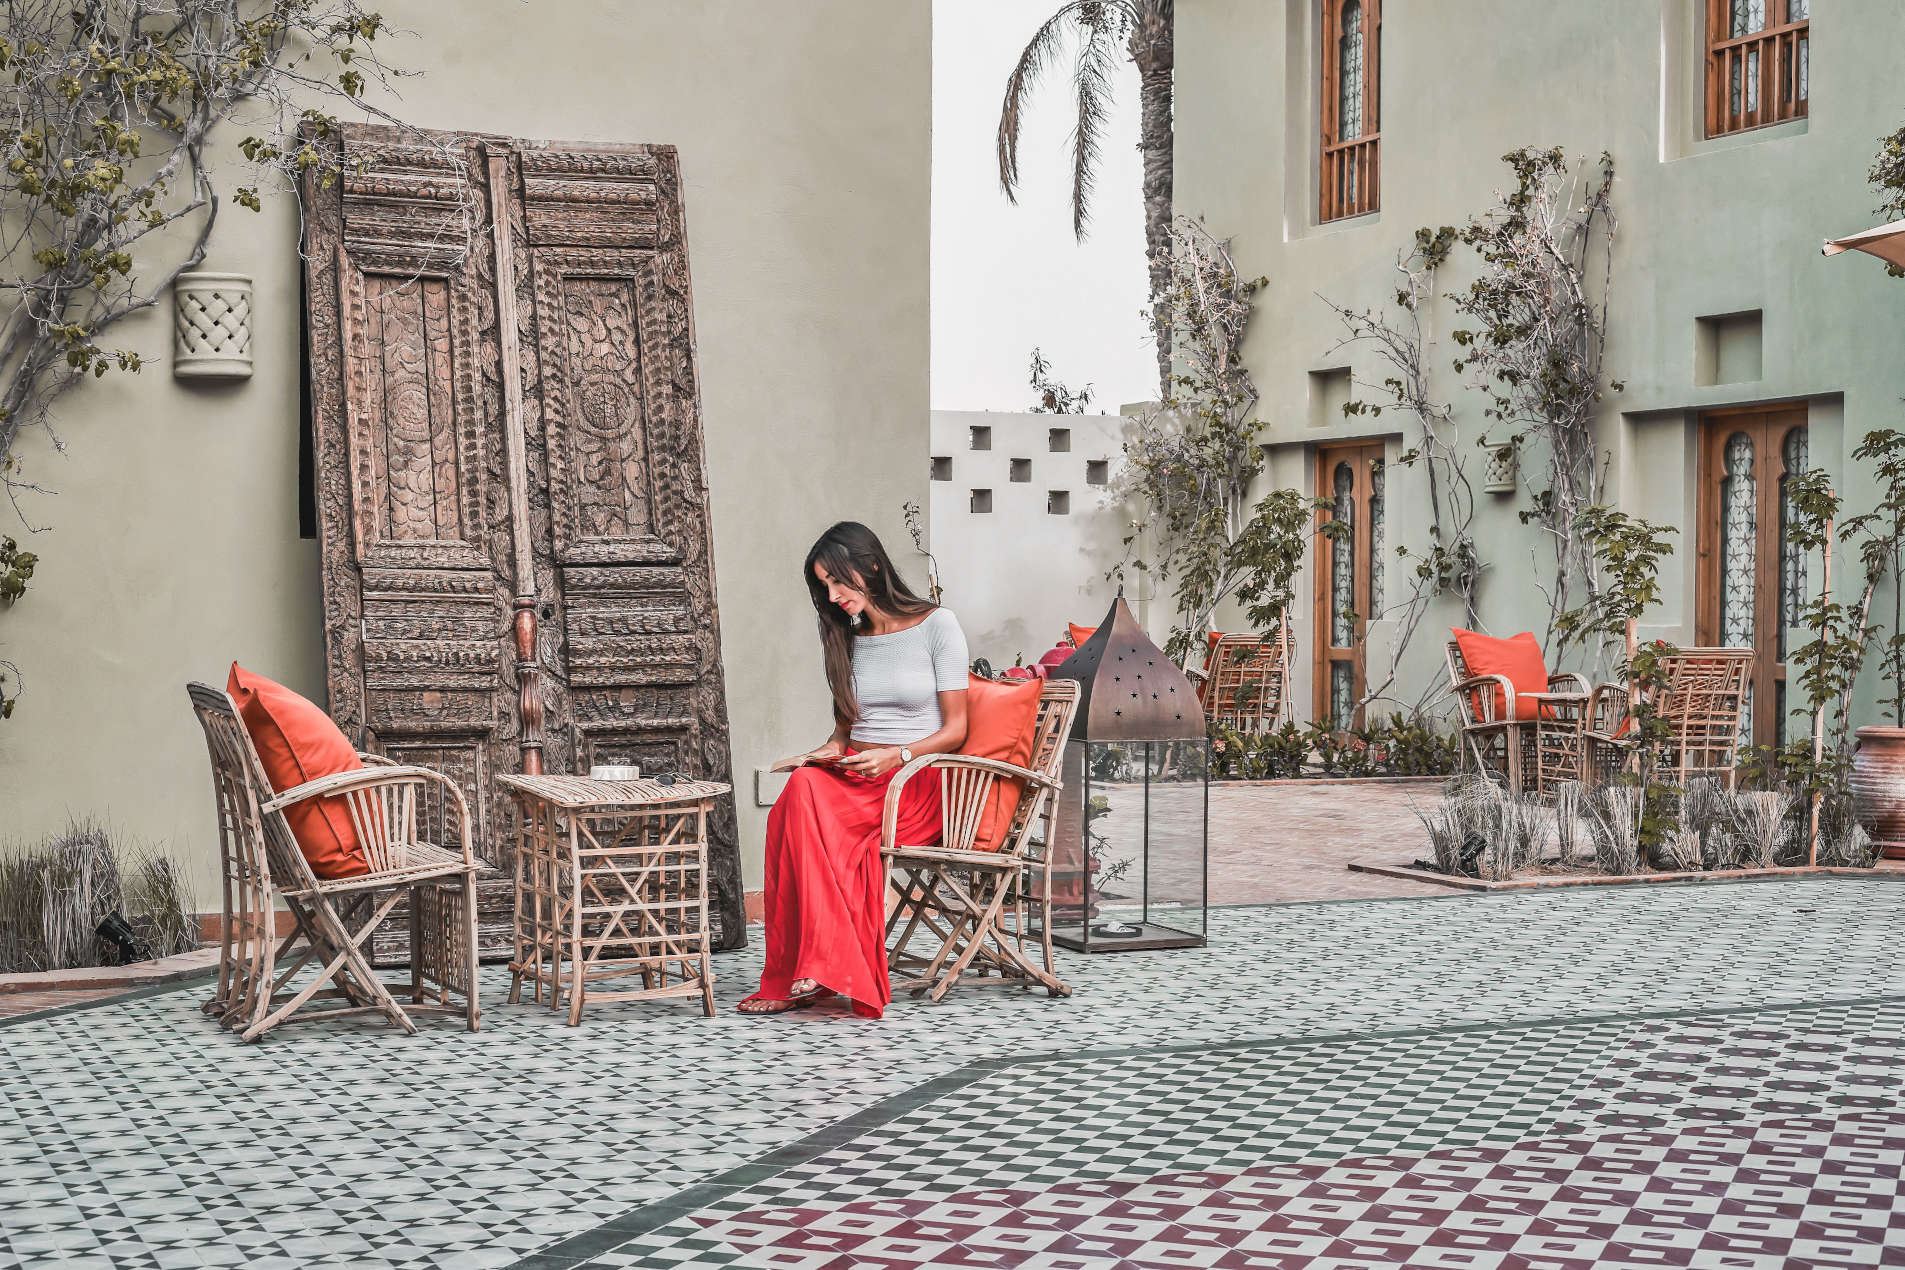 Picturesque Courtyard of Ali Pasha hotel where a female guest is sitting and reading, all reflecting the unmatched lifestyle of Ali Pasha hotel El Gouna